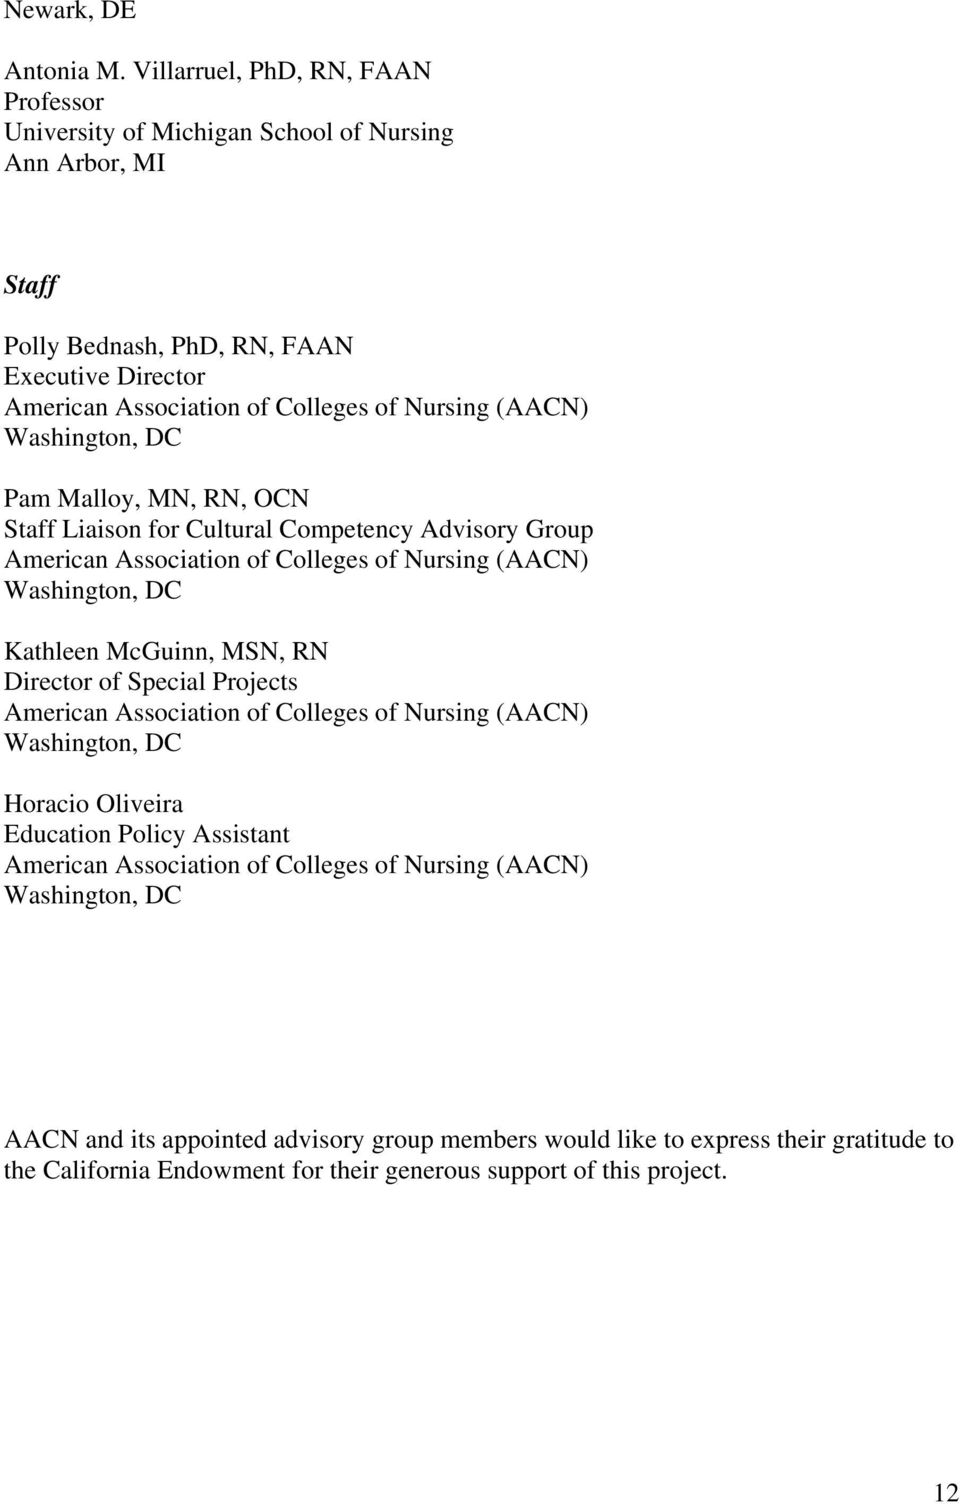 (AACN) Washington, DC Pam Malloy, MN, RN, OCN Staff Liaison for Cultural Competency Advisory Group American Association of Colleges of Nursing (AACN) Washington, DC Kathleen McGuinn, MSN, RN